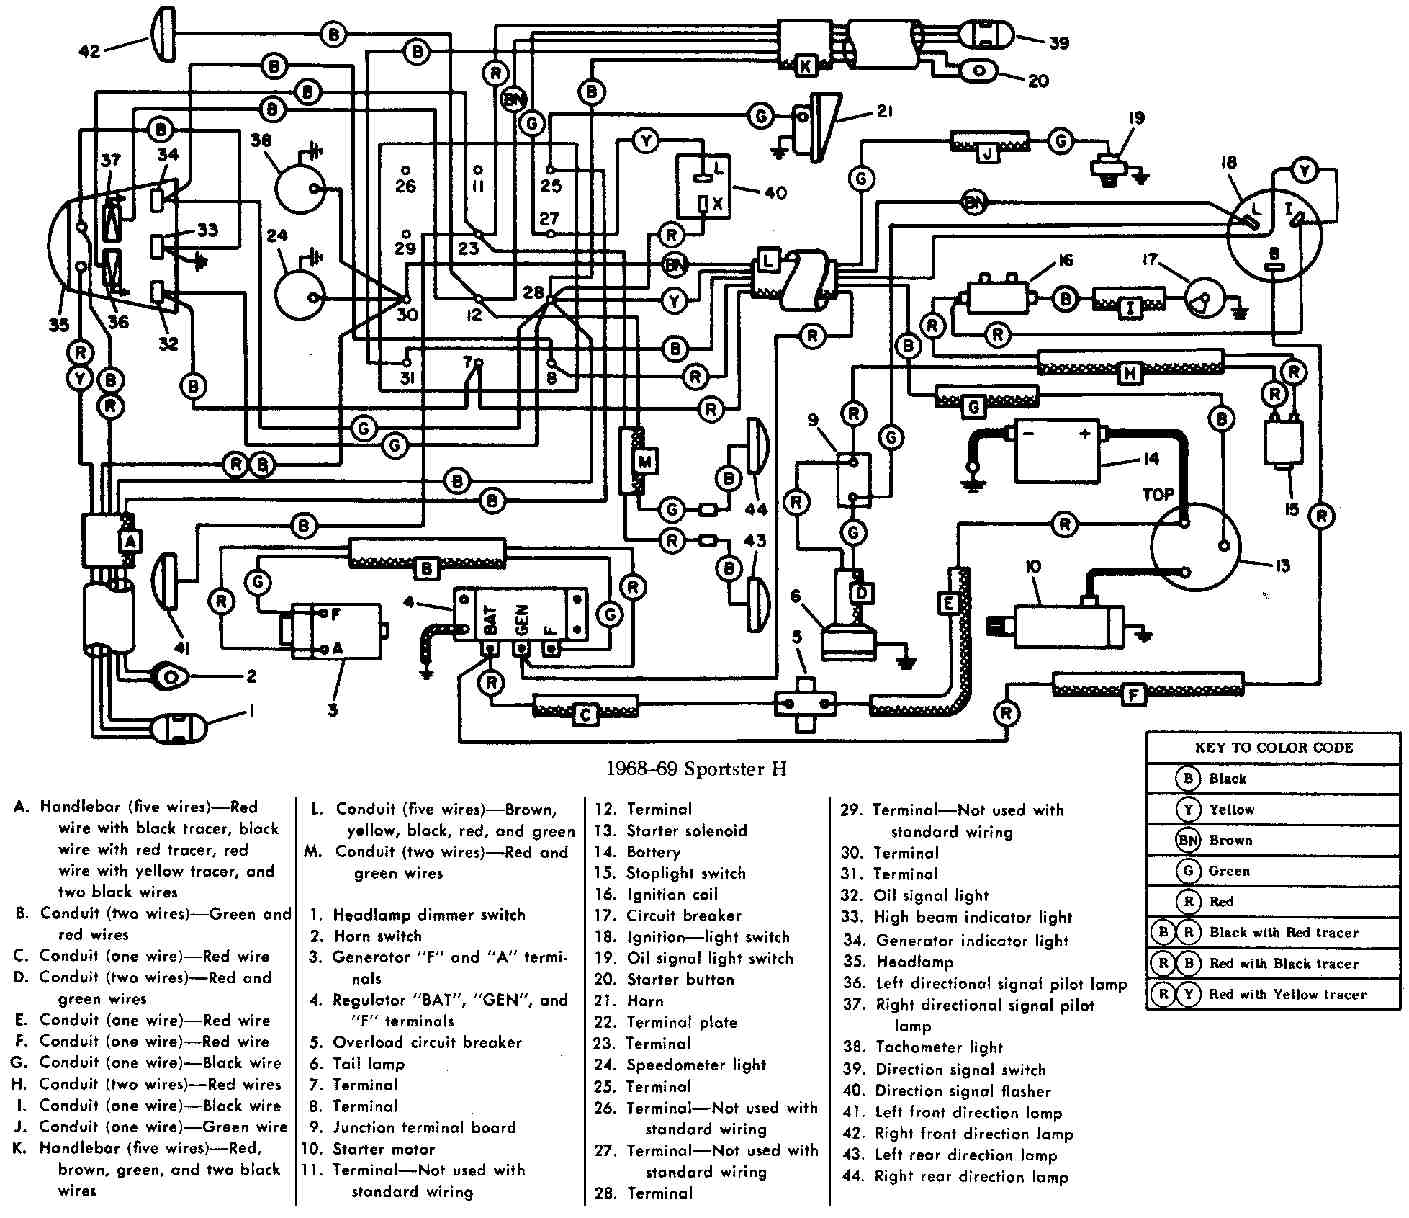 91 Flstc Wiring Diagram | Wiring Diagram on